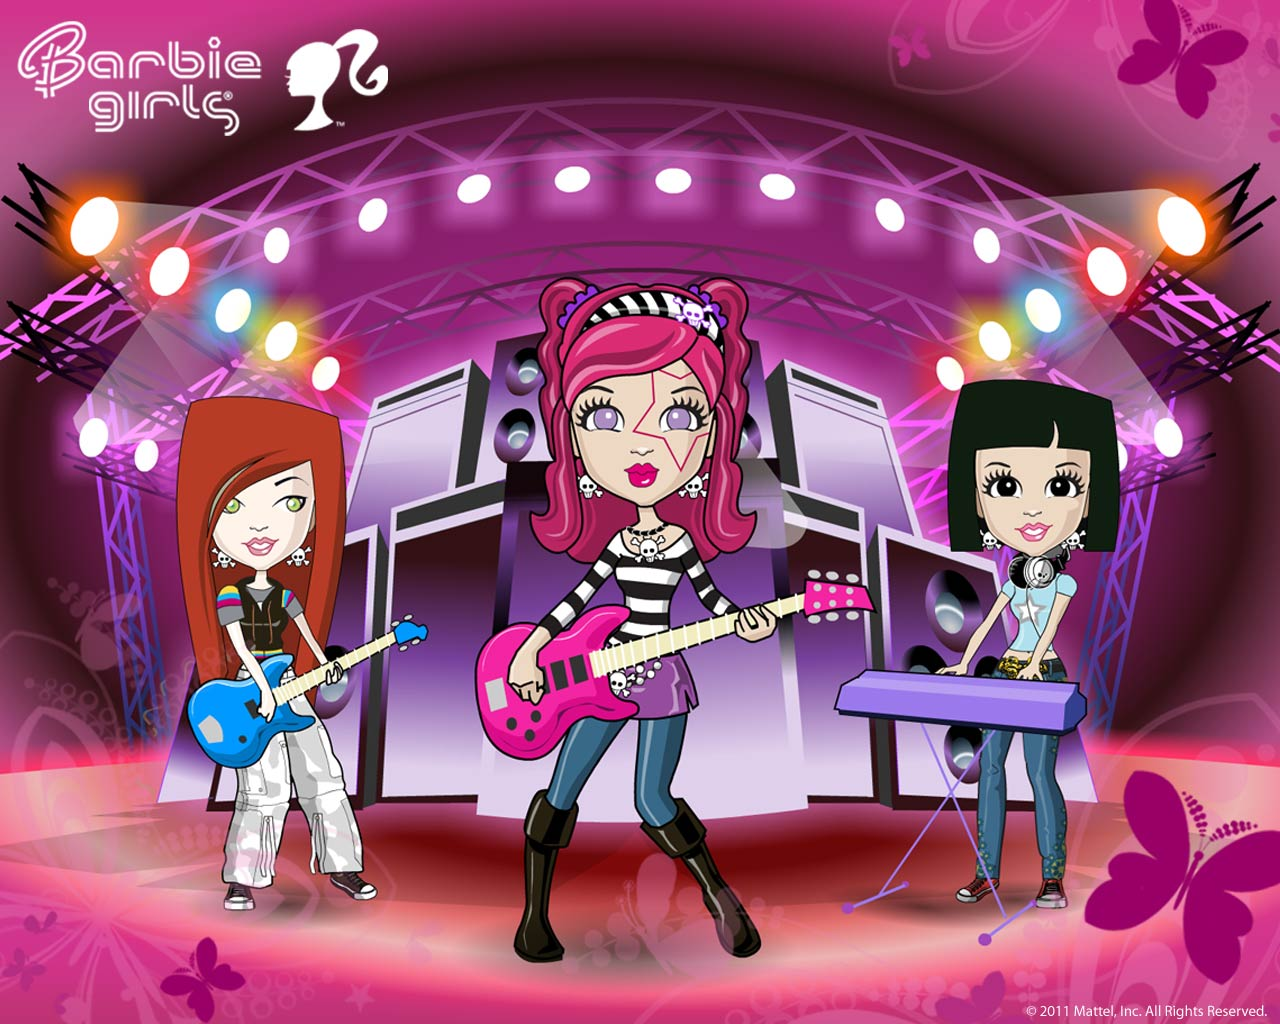 Barbie Girls World  Now coming up    Wallpapers    BGirls Wallpaper 1